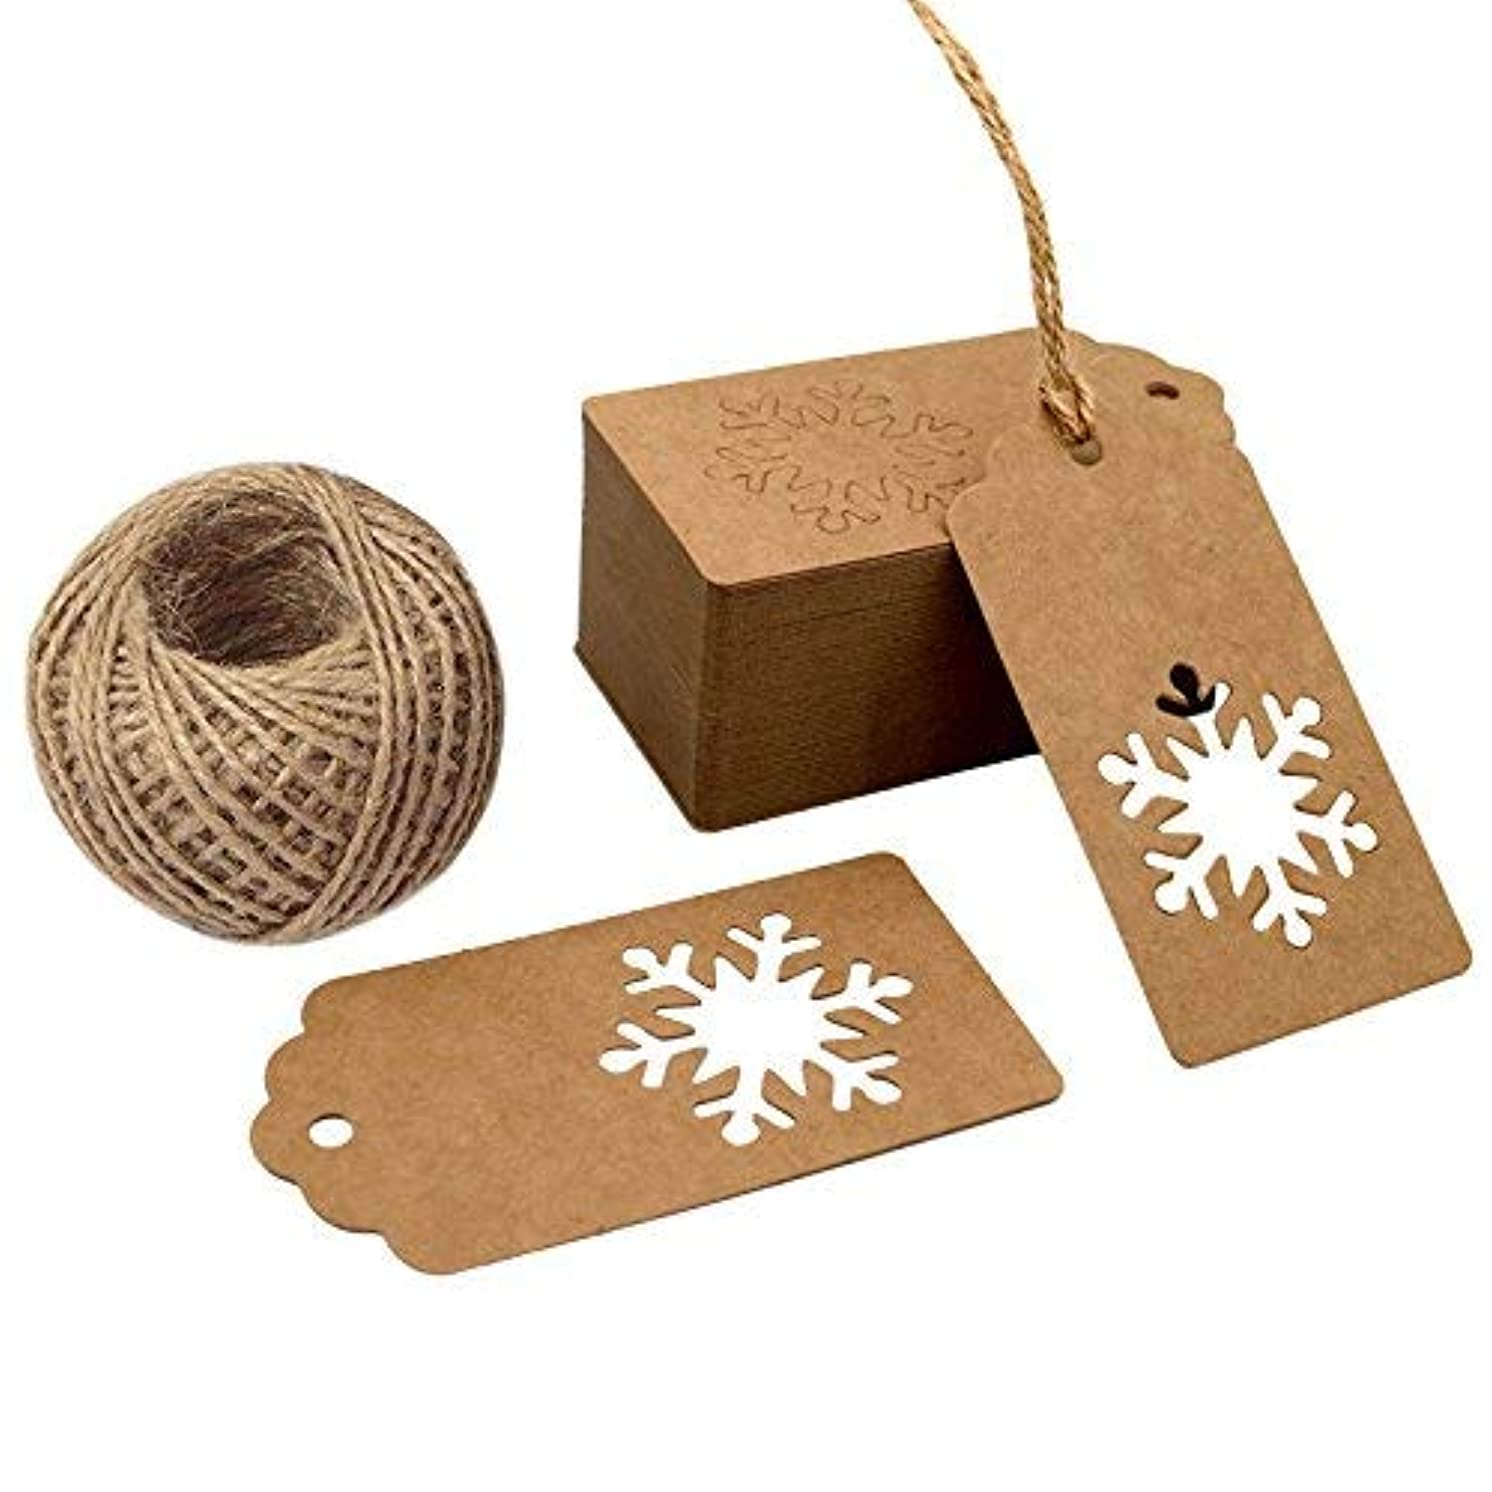 100 PCS Christmas Gift Tags with 100 Feet Natural Jute Twine,Kraft Paper Tags Perfect for Christmas Gift Wrapping Packaging (Brown)